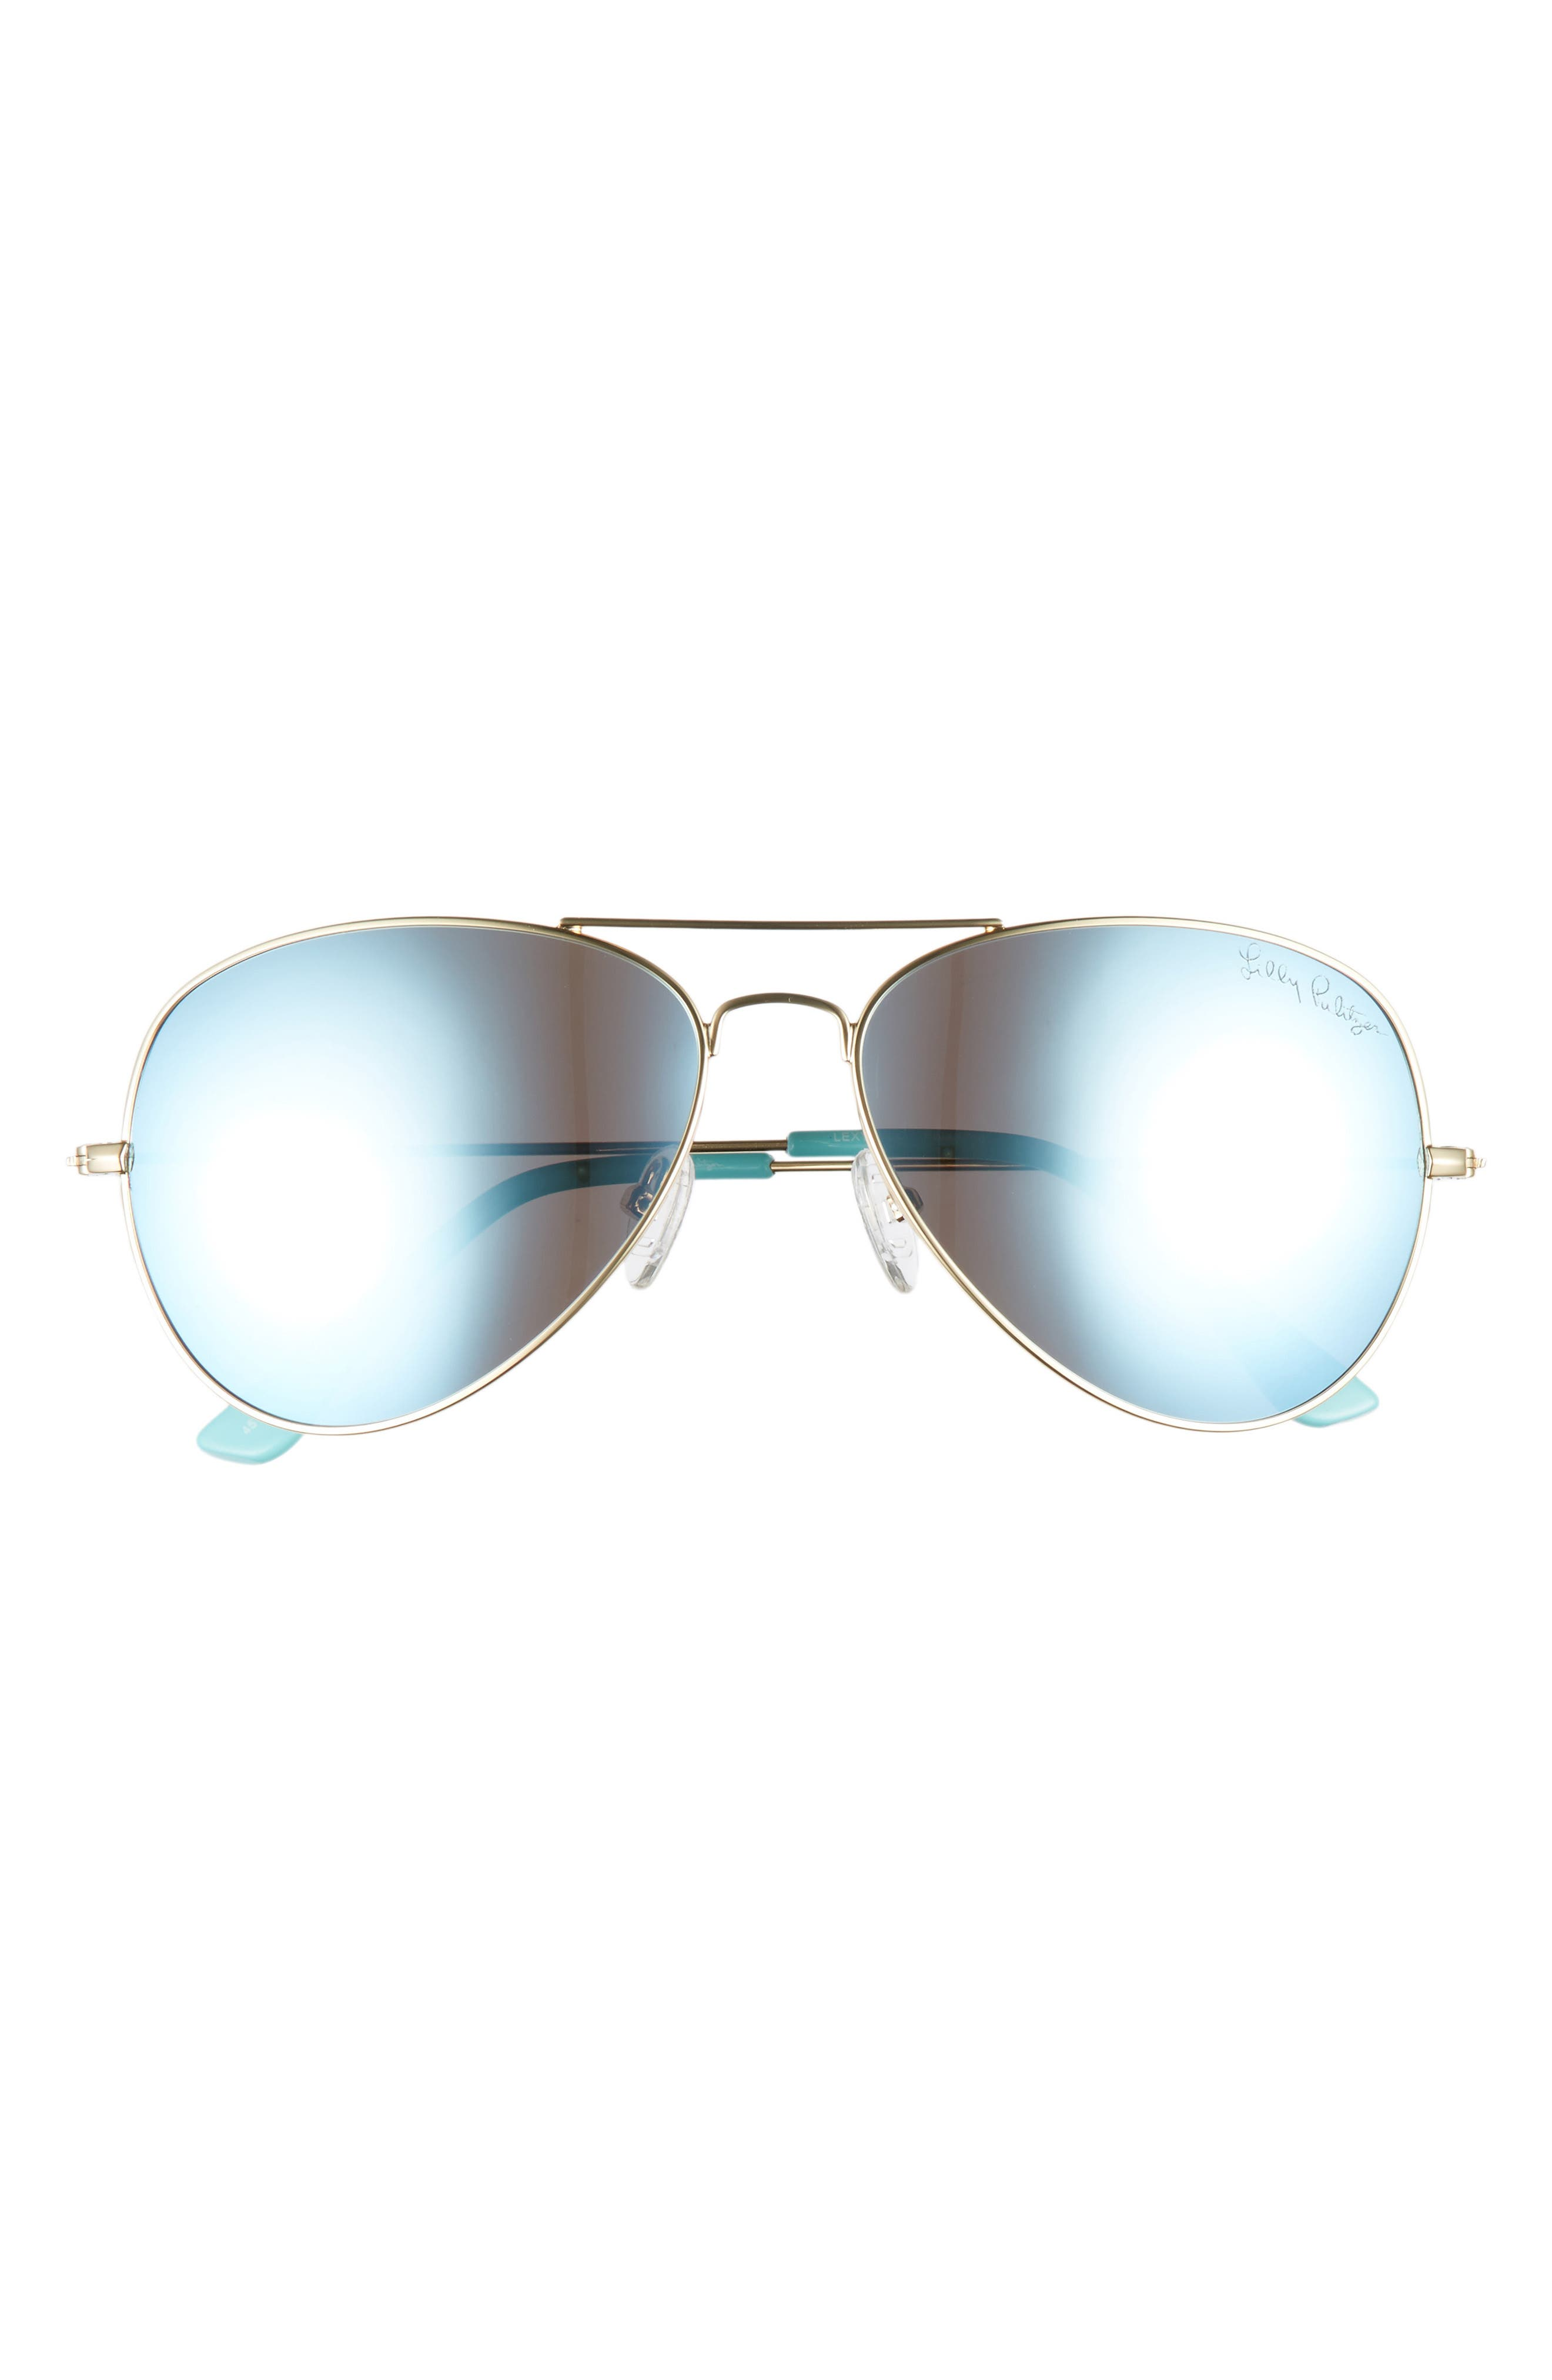 Lexy 59mm Polarized Aviator Sunglasses,                             Alternate thumbnail 3, color,                             BLUE 2